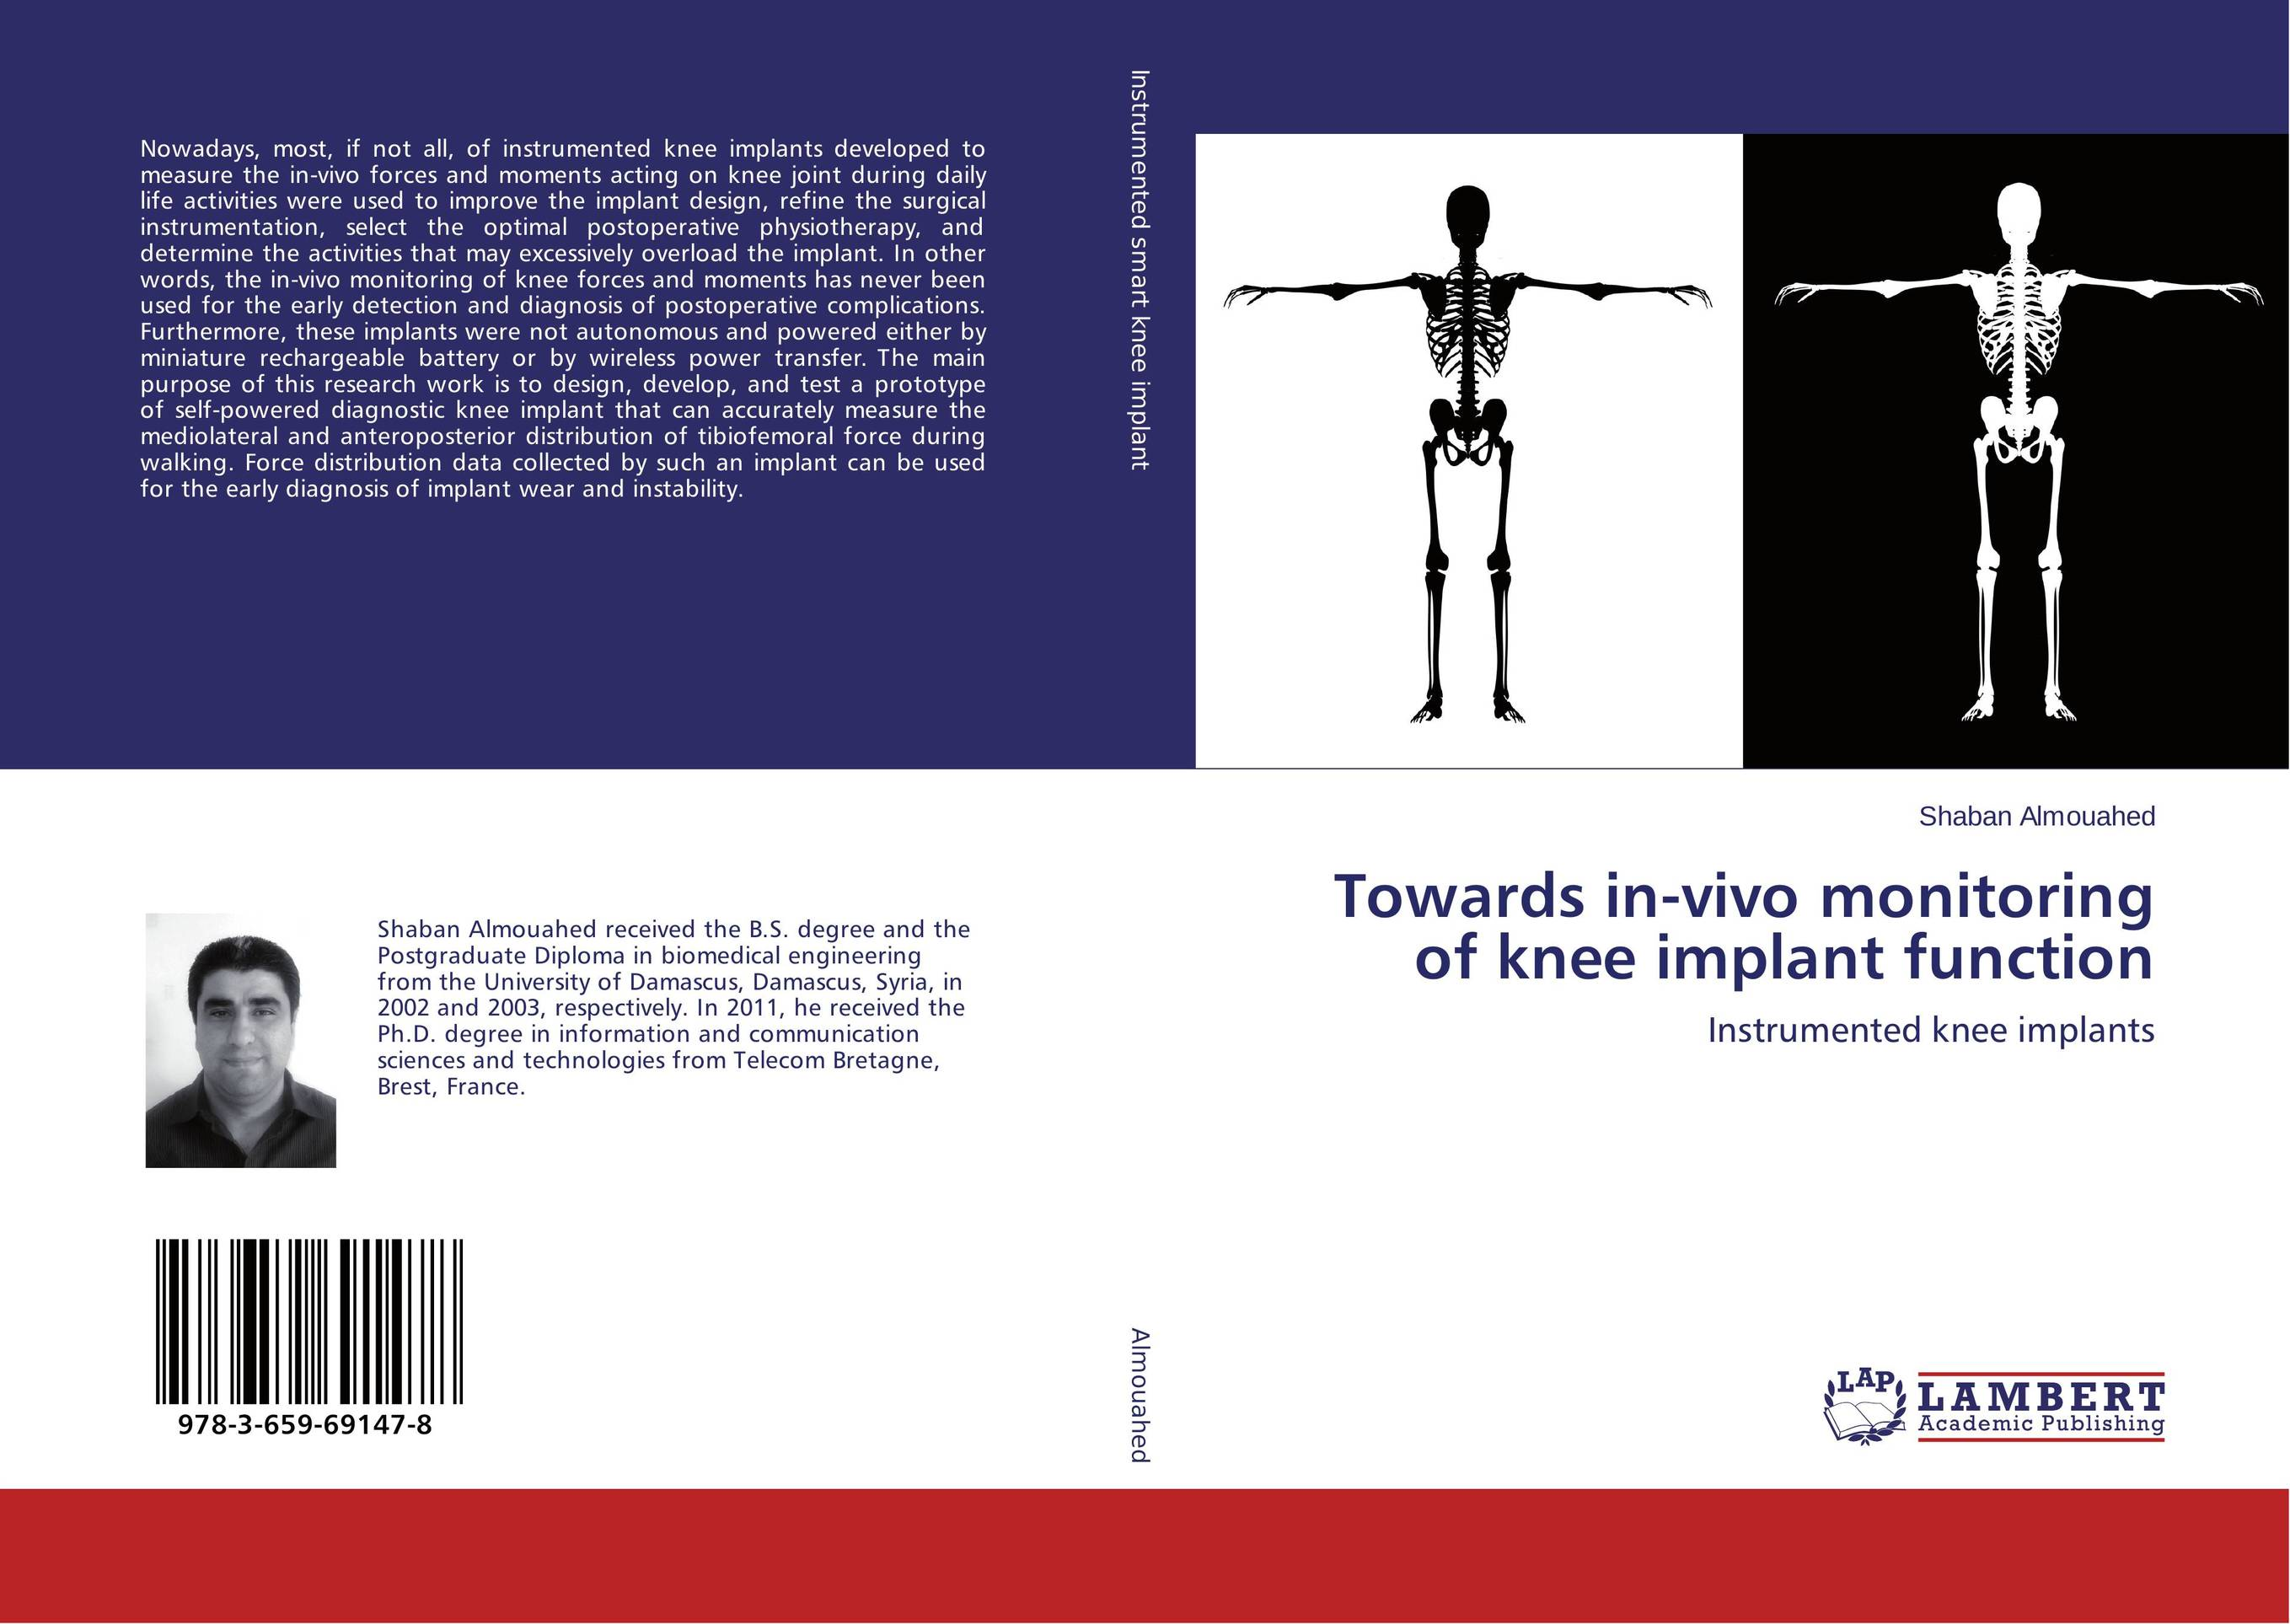 Towards in-vivo monitoring of knee implant function franke bibliotheca cardiologica ballistocardiogra phy research and computer diagnosis